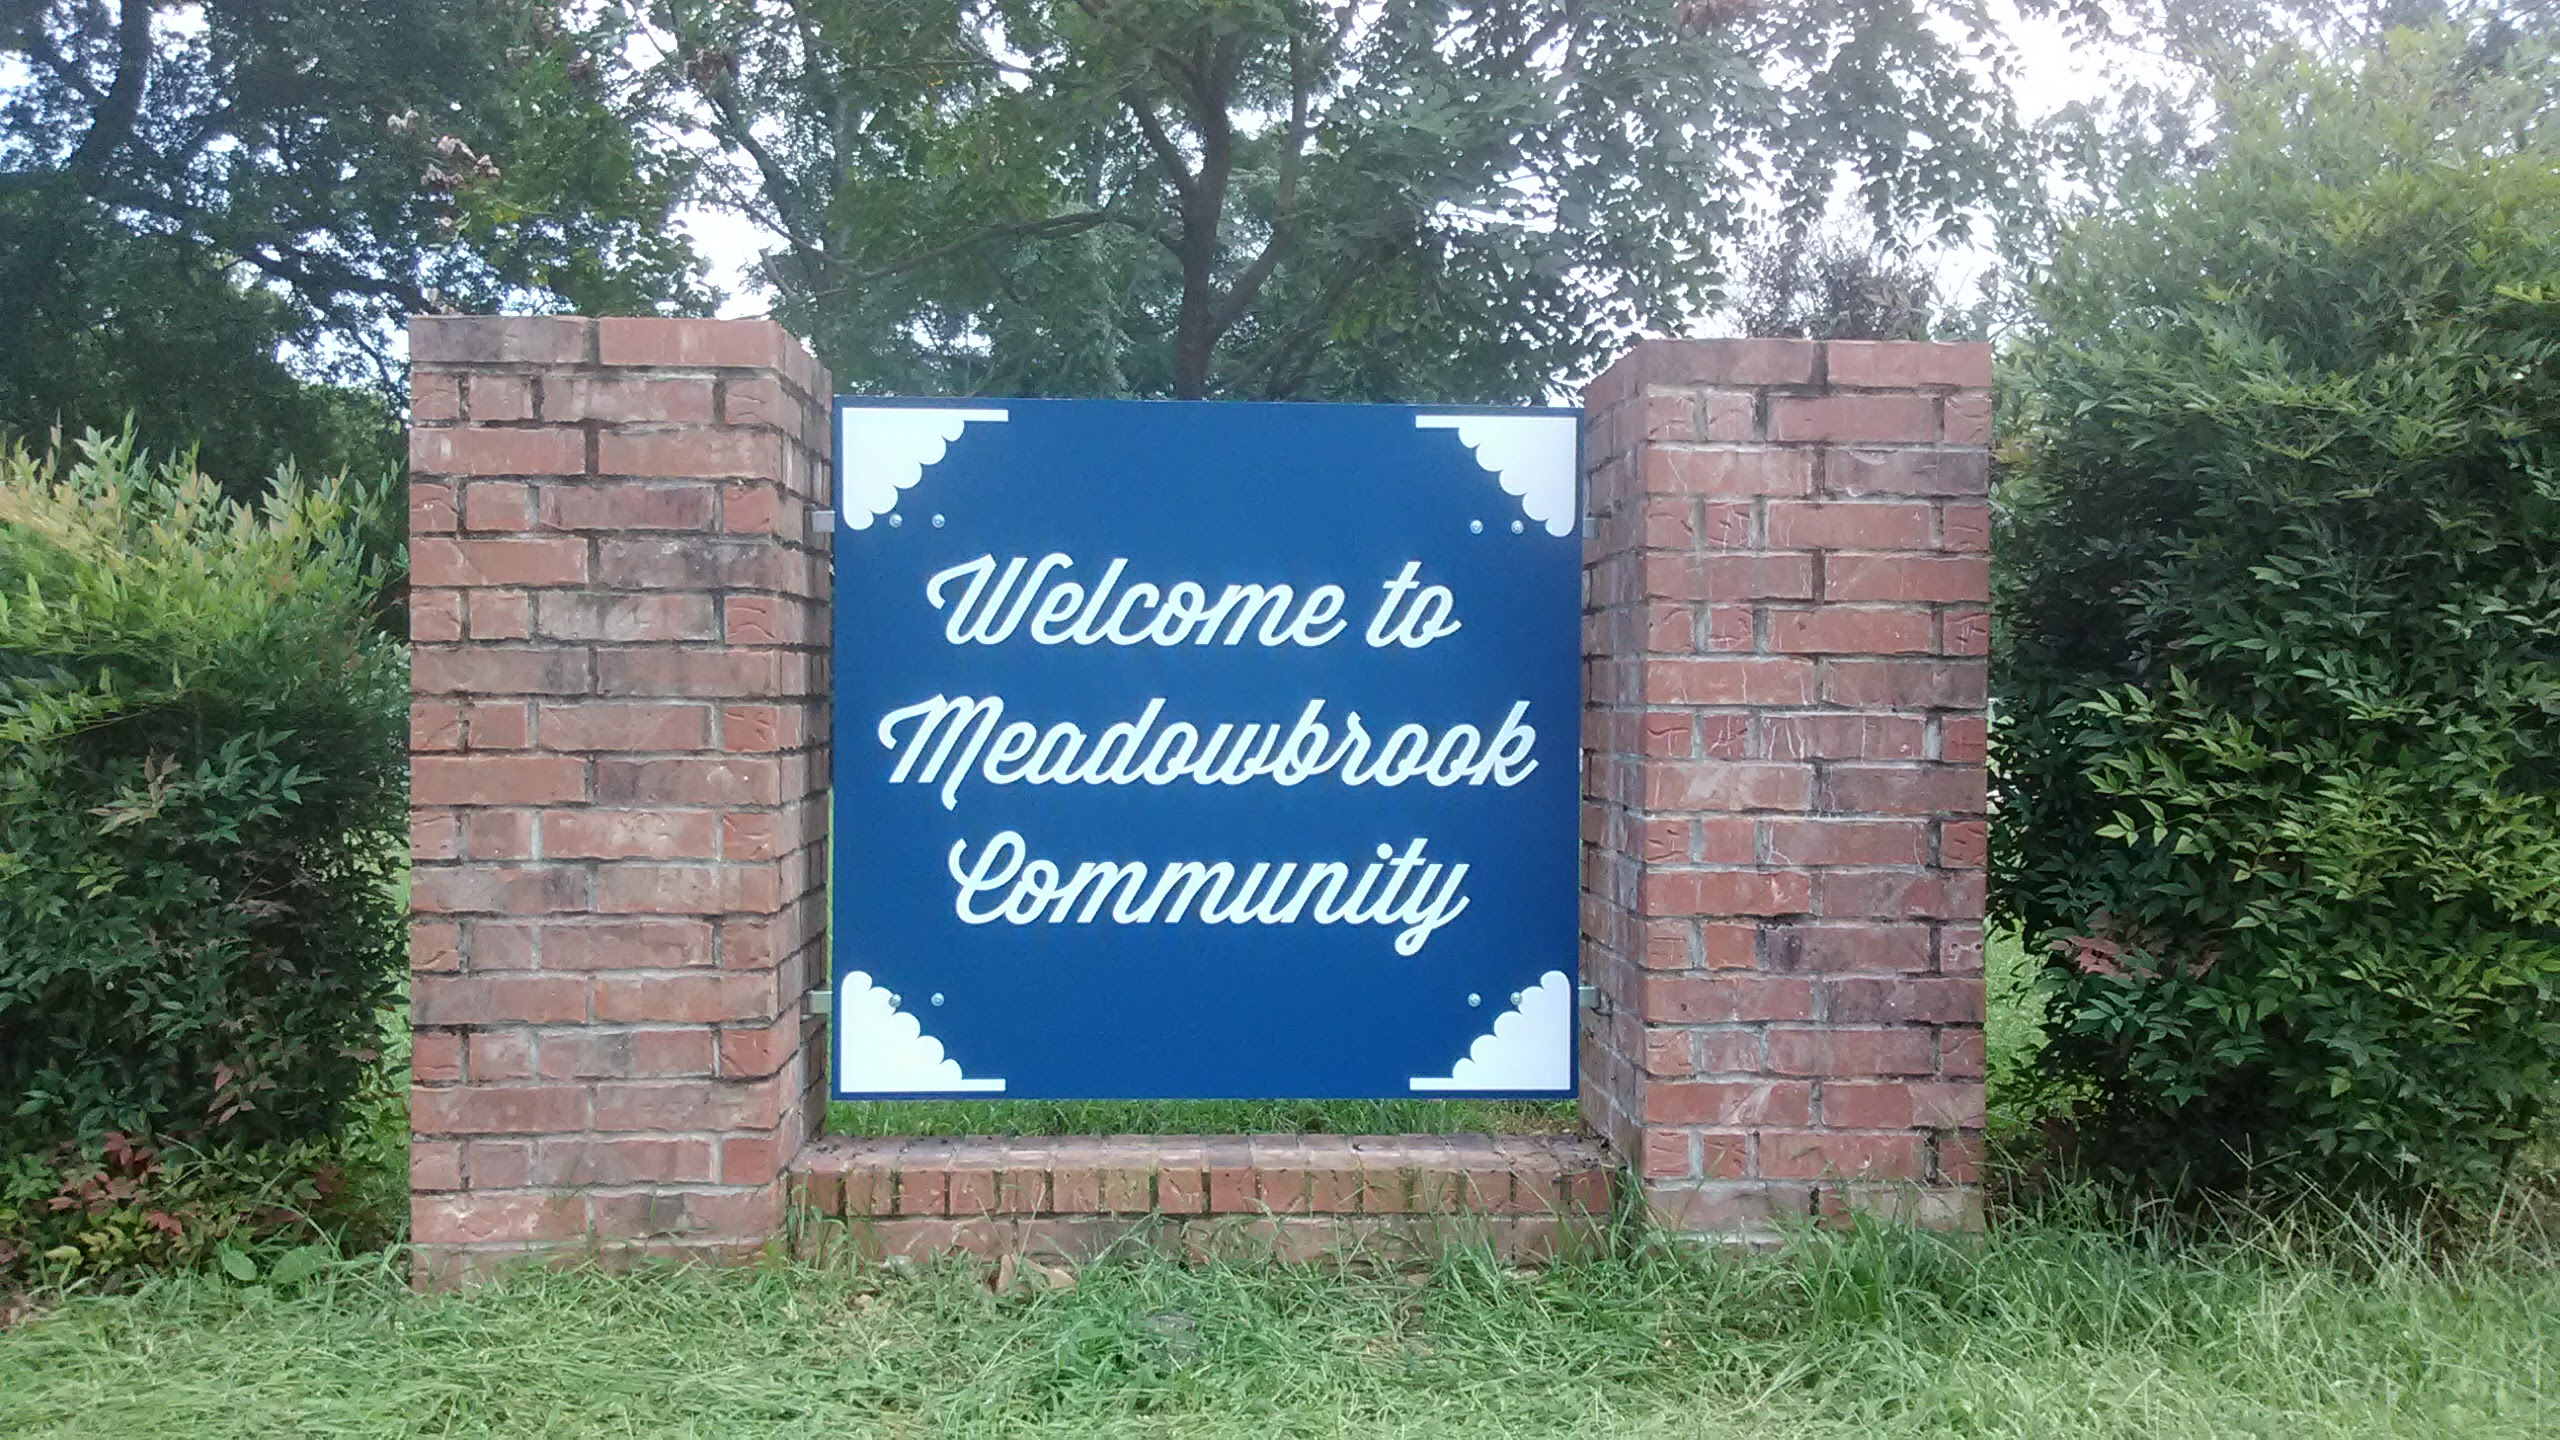 Meadowbrook Community Entrance